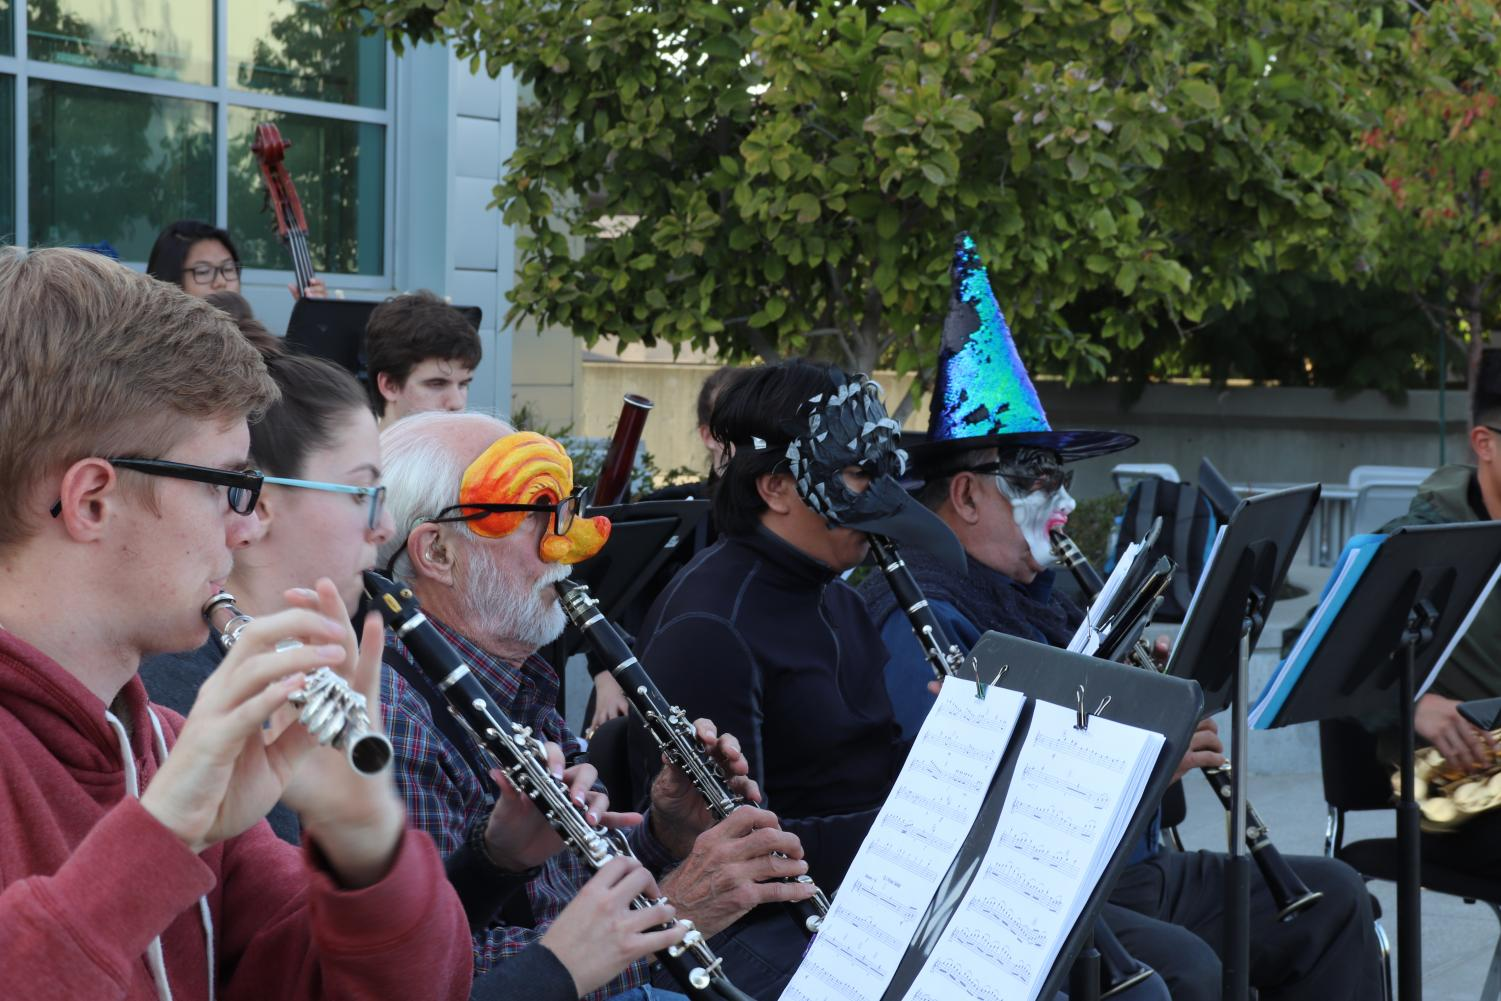 The brass section performs in costume during the impromptu concerto.